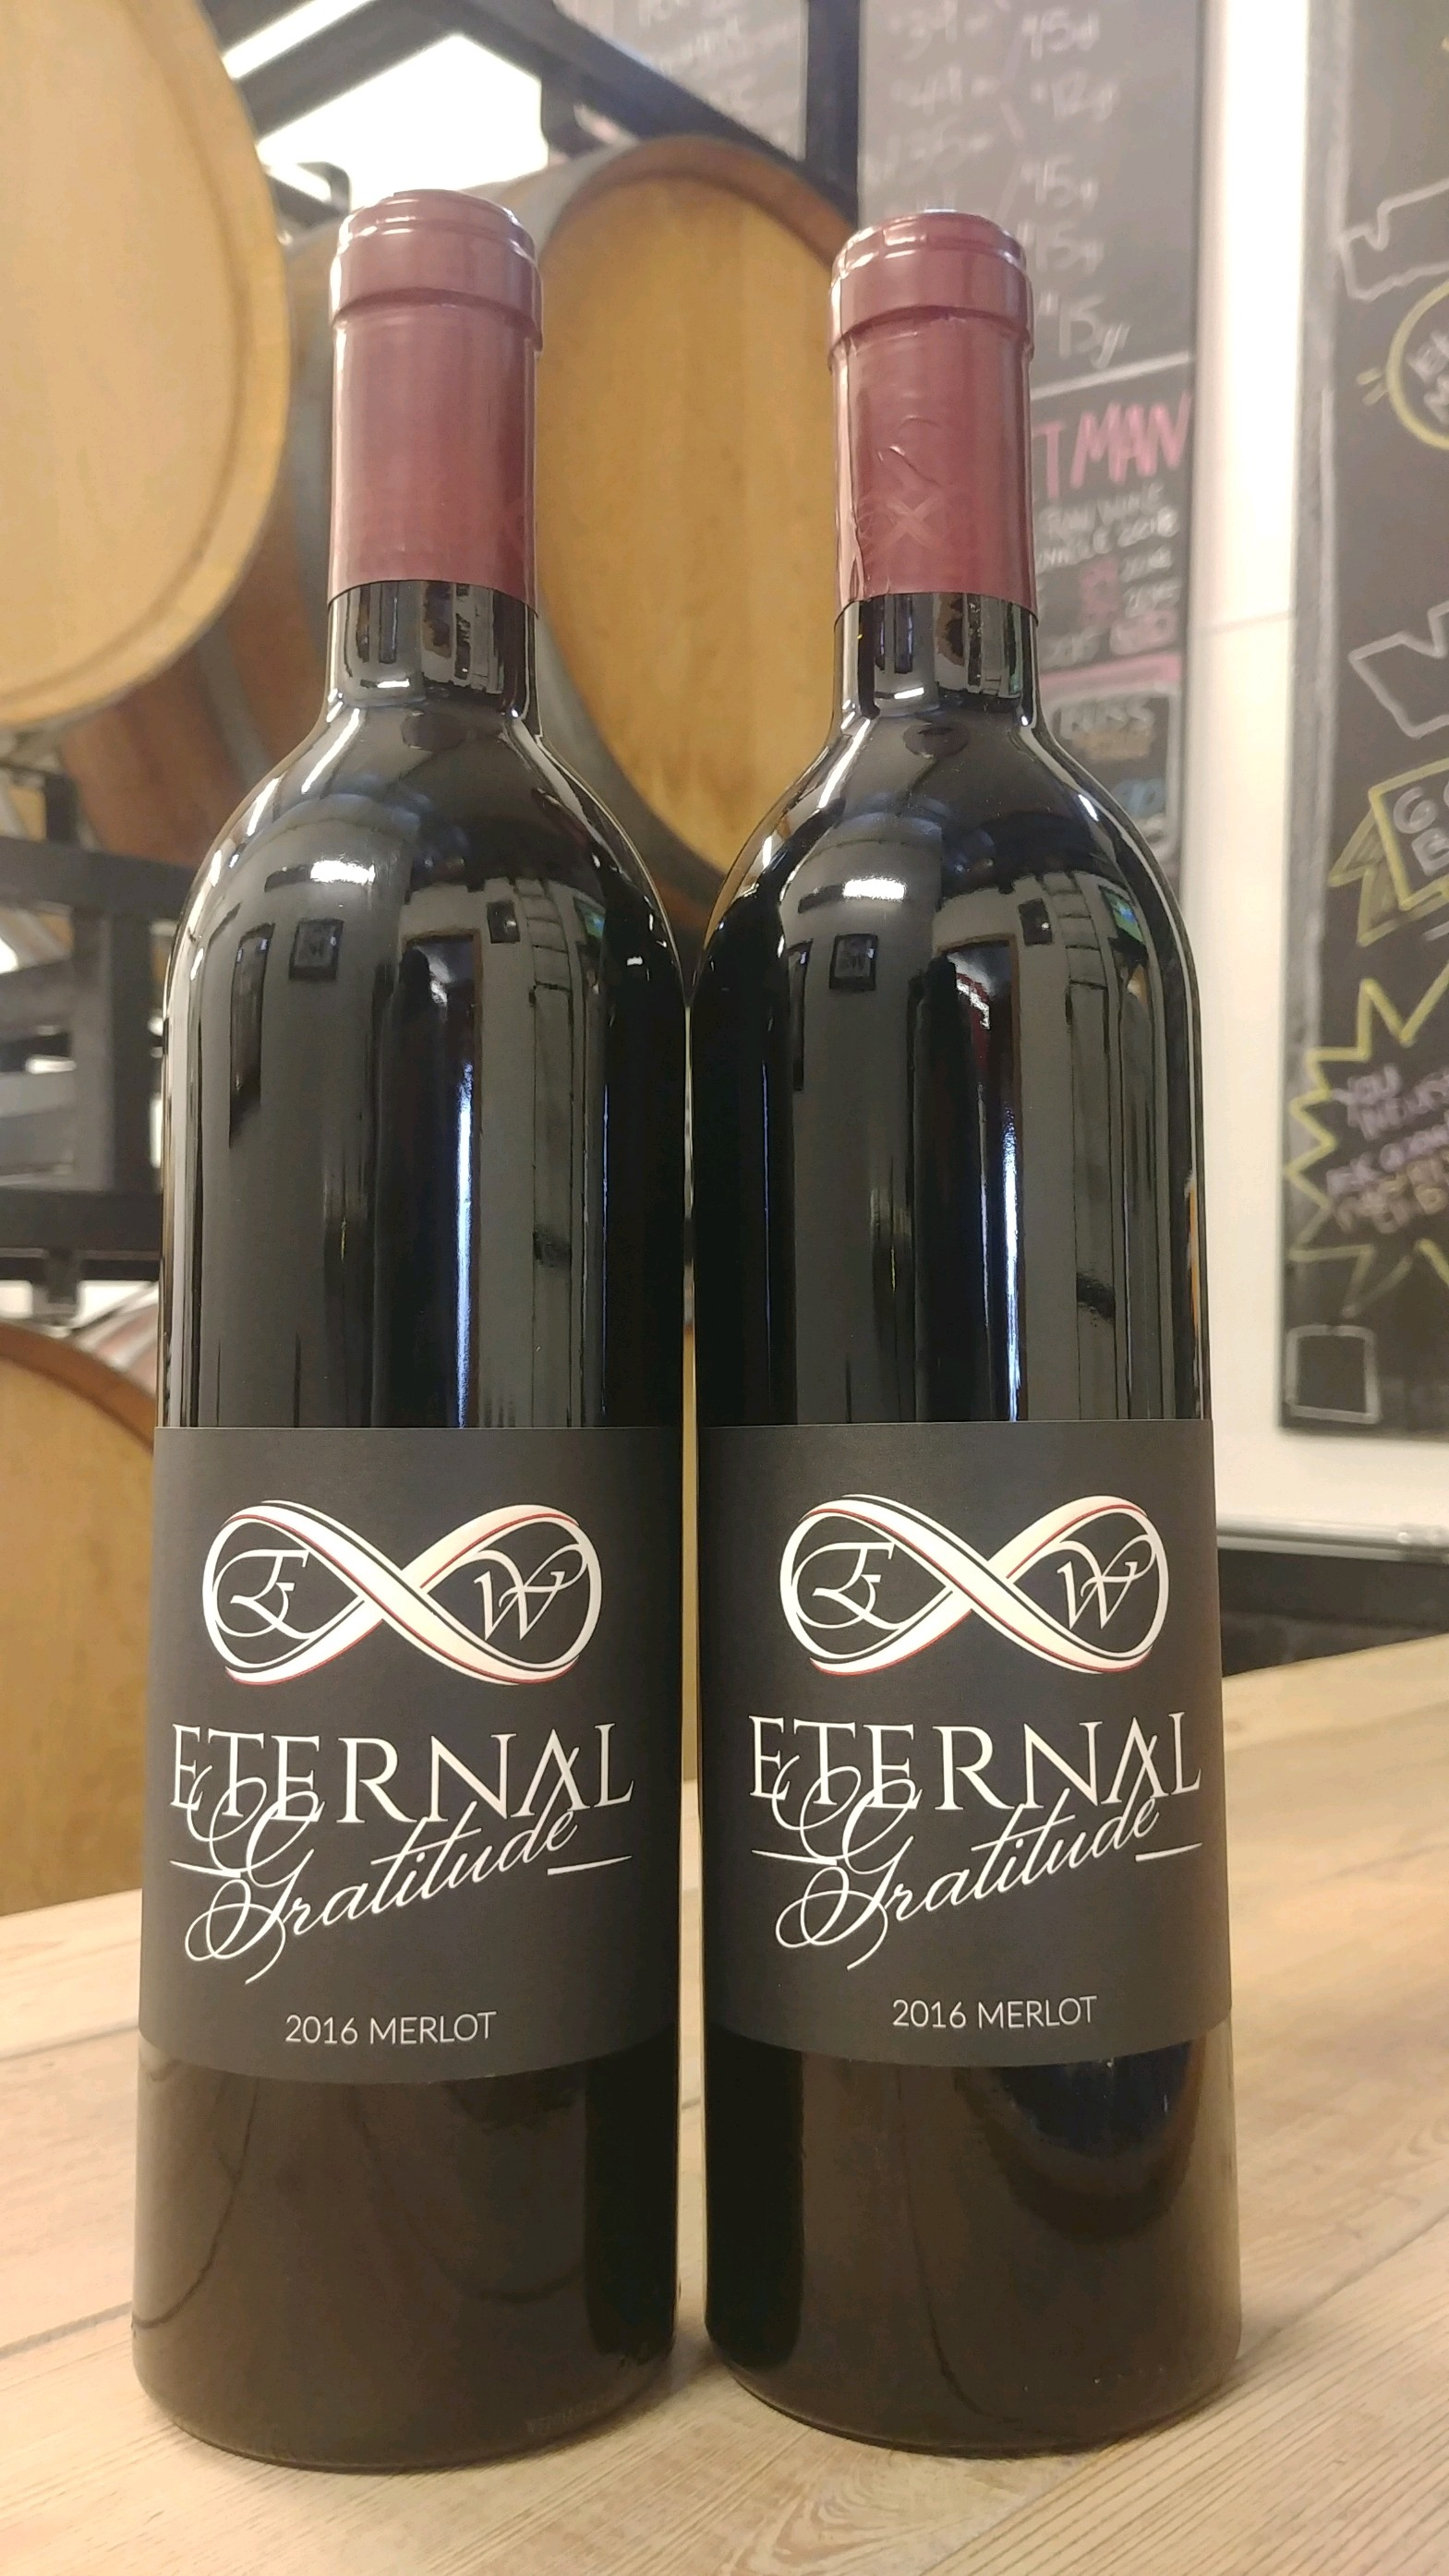 12 - 2017 Eternal Gratitude Merlot (Case)